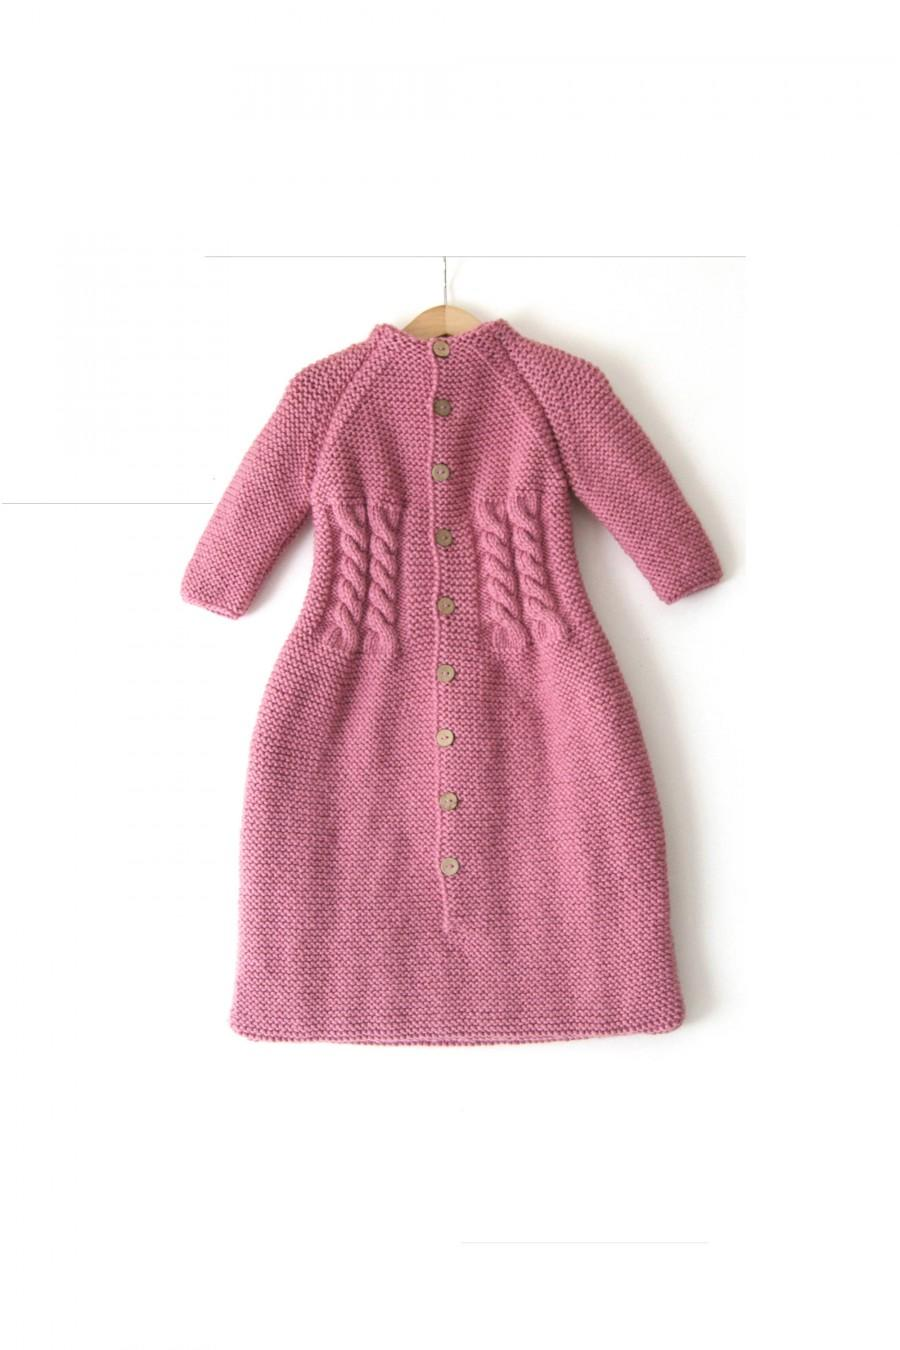 Wedding - NEW! Hand Knitted wool baby Sleeping Bag, chunky, raglan long sleeves with coconut buttons on the front side